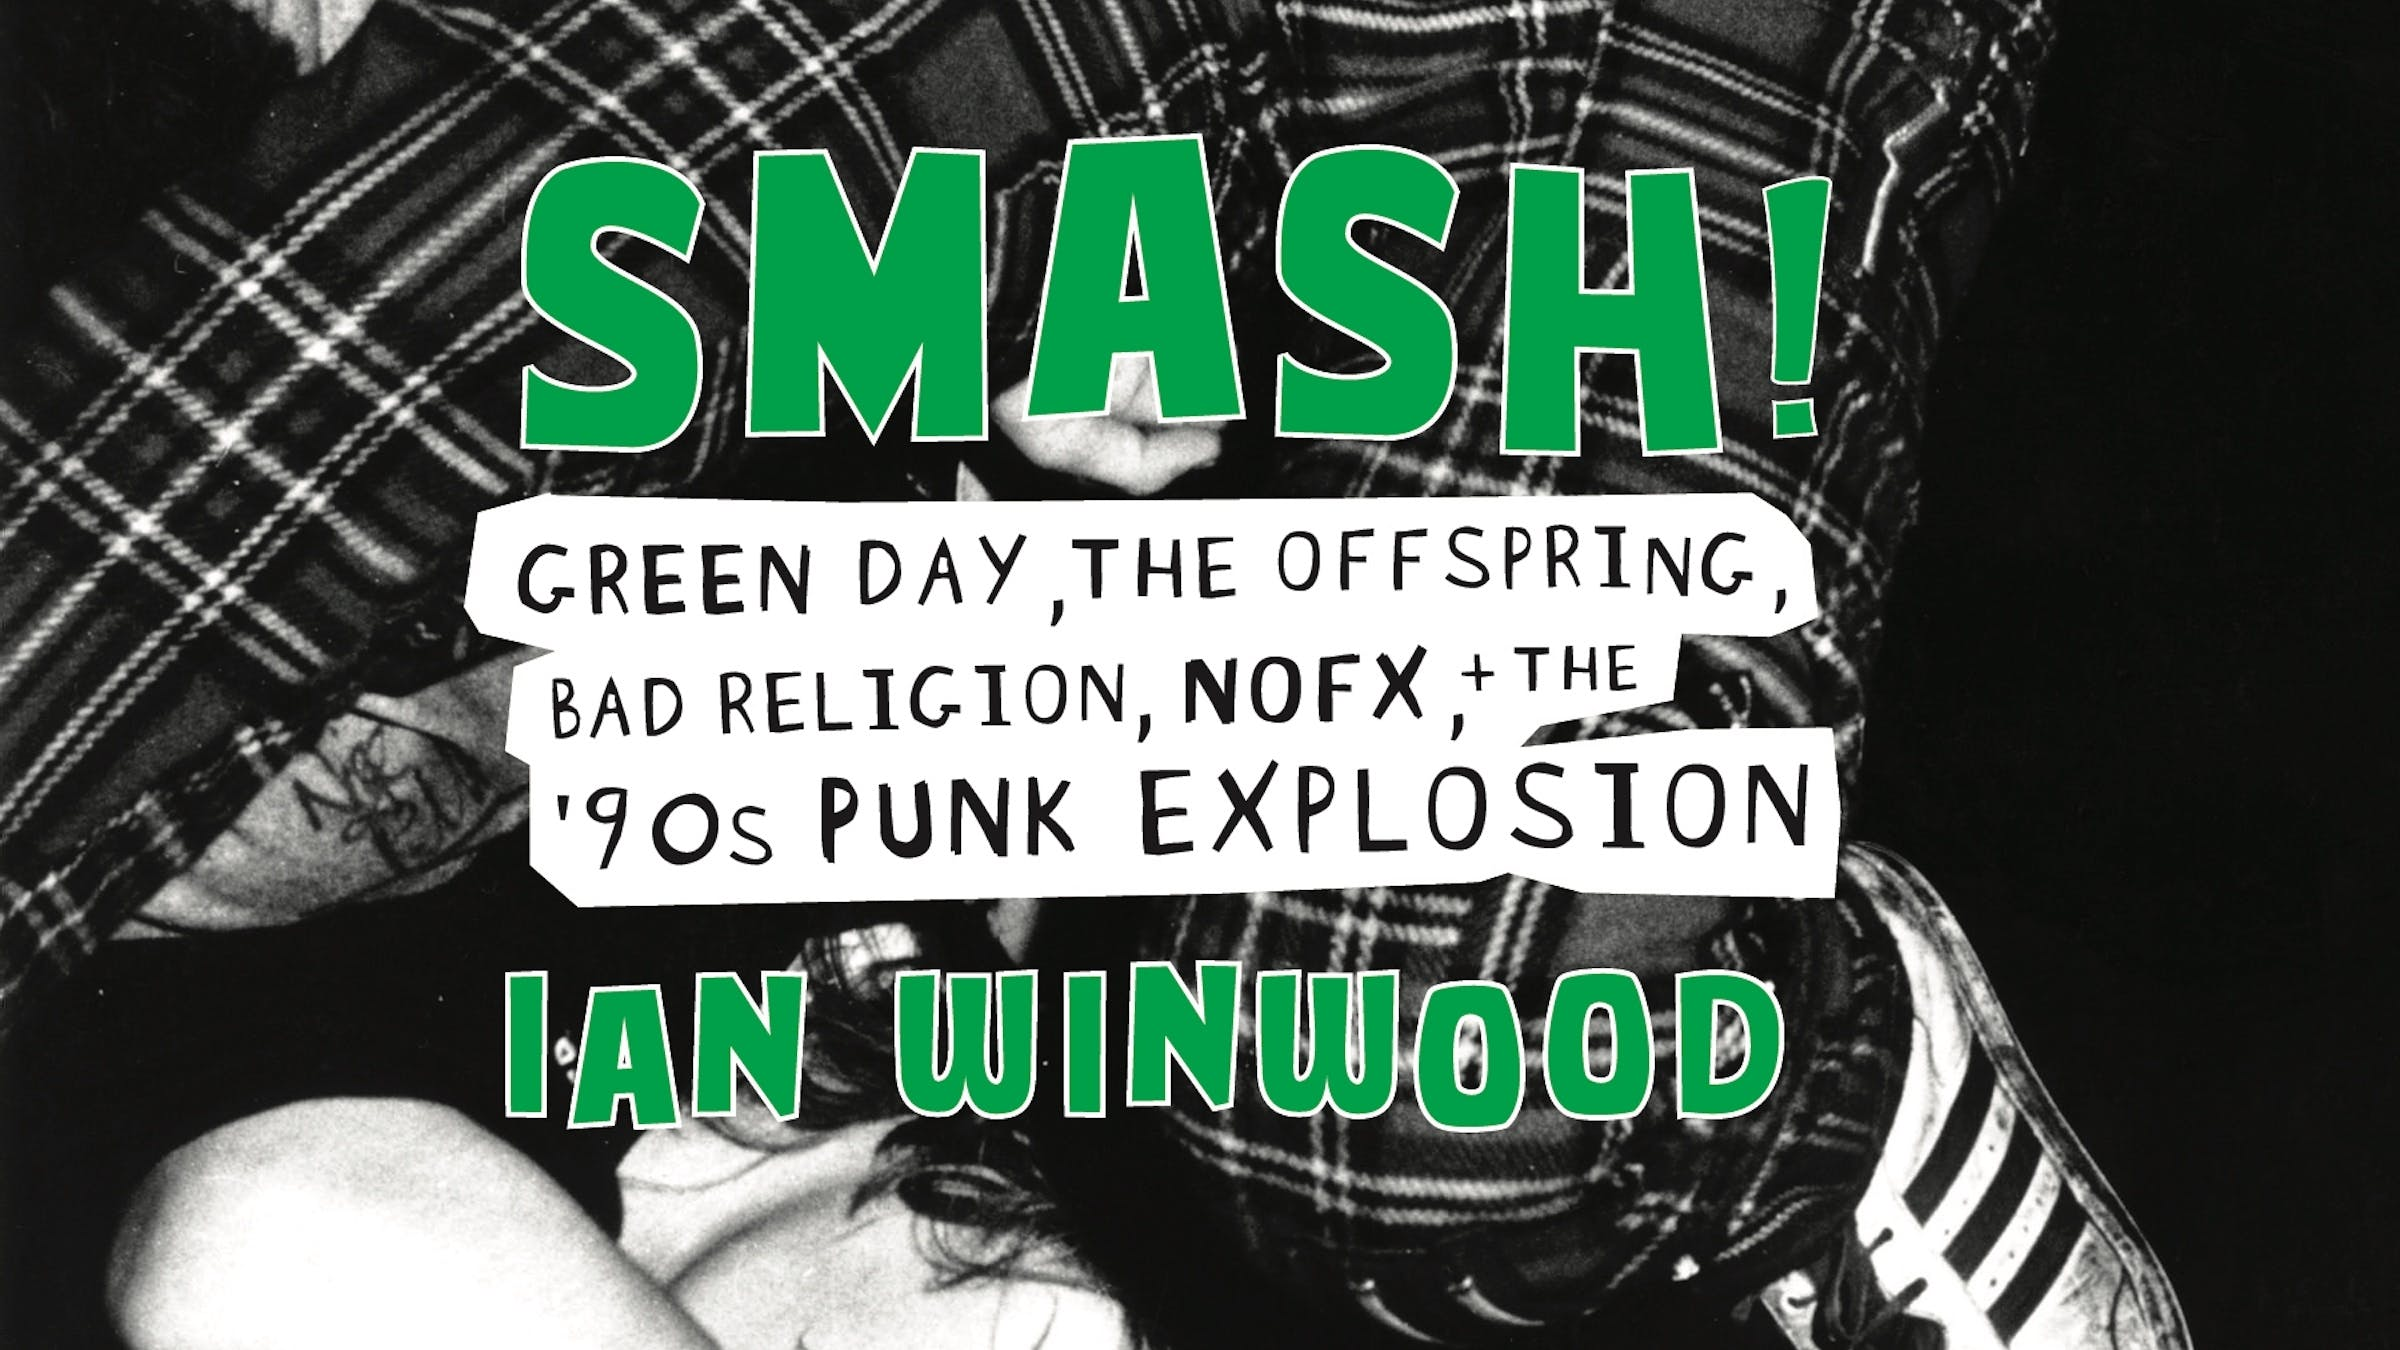 11 Things We Learned About '90s Punk From The New Tell-All Book, Smash!